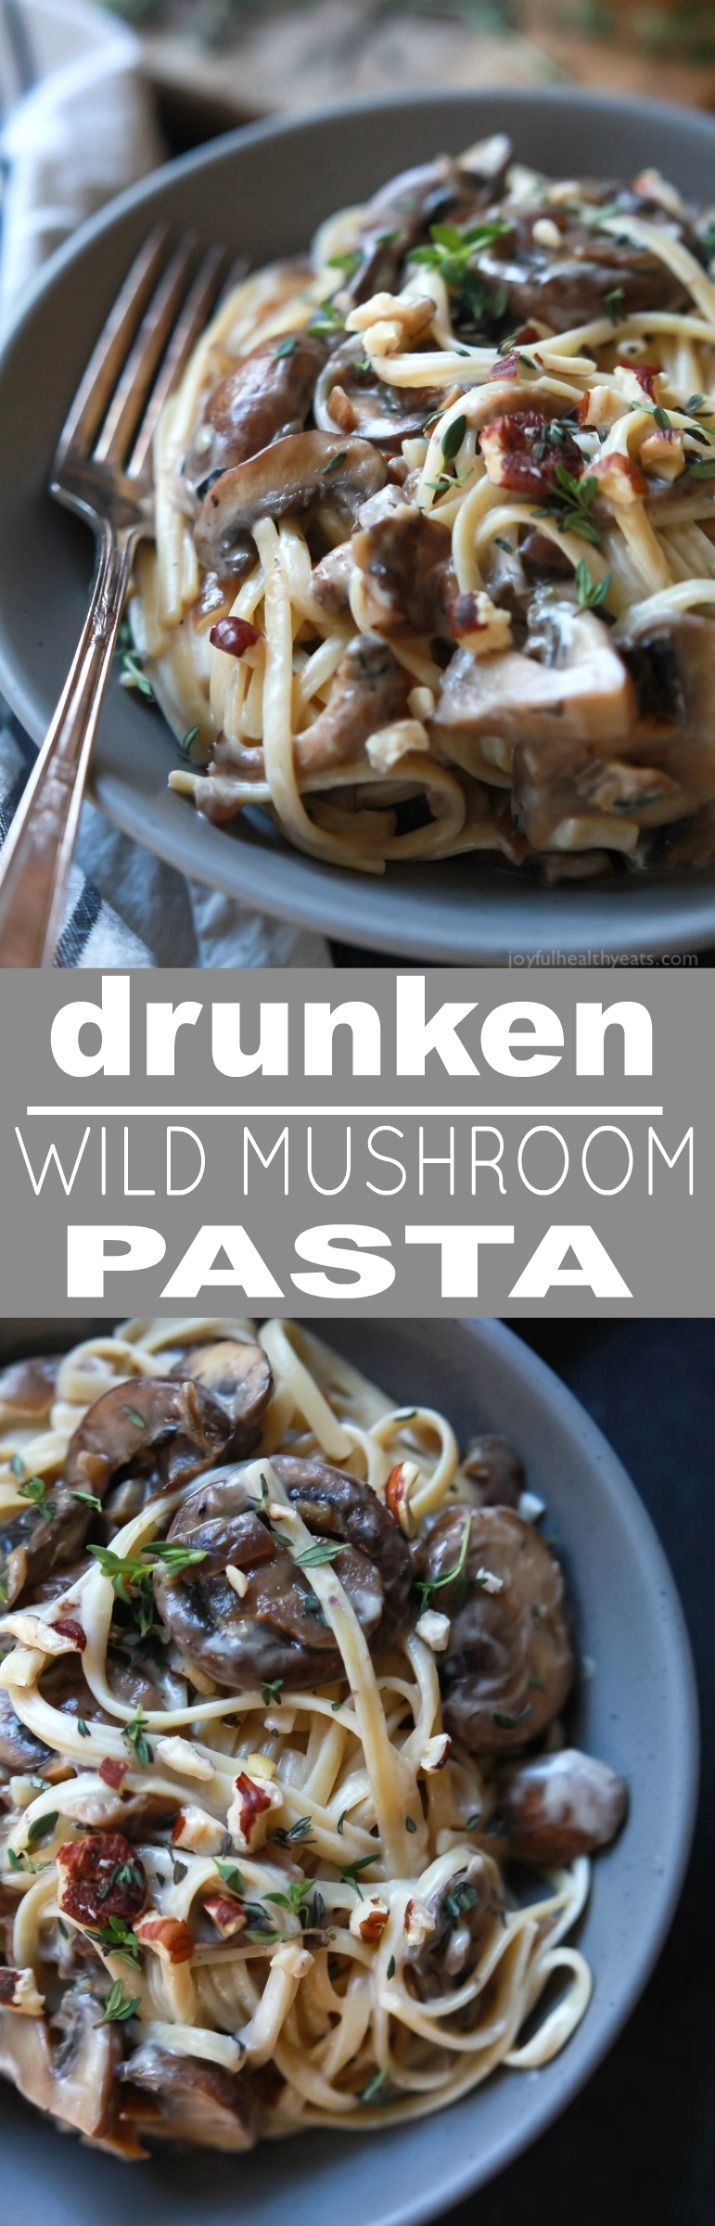 Drunken Wild Mushroom Pasta with a Creamy Goat Cheese Sauce - this recipe is total comfort food! Easy, done in just 30 minutes, only 331 calories, and vegetarian   http://joyfulhealthyeats.com